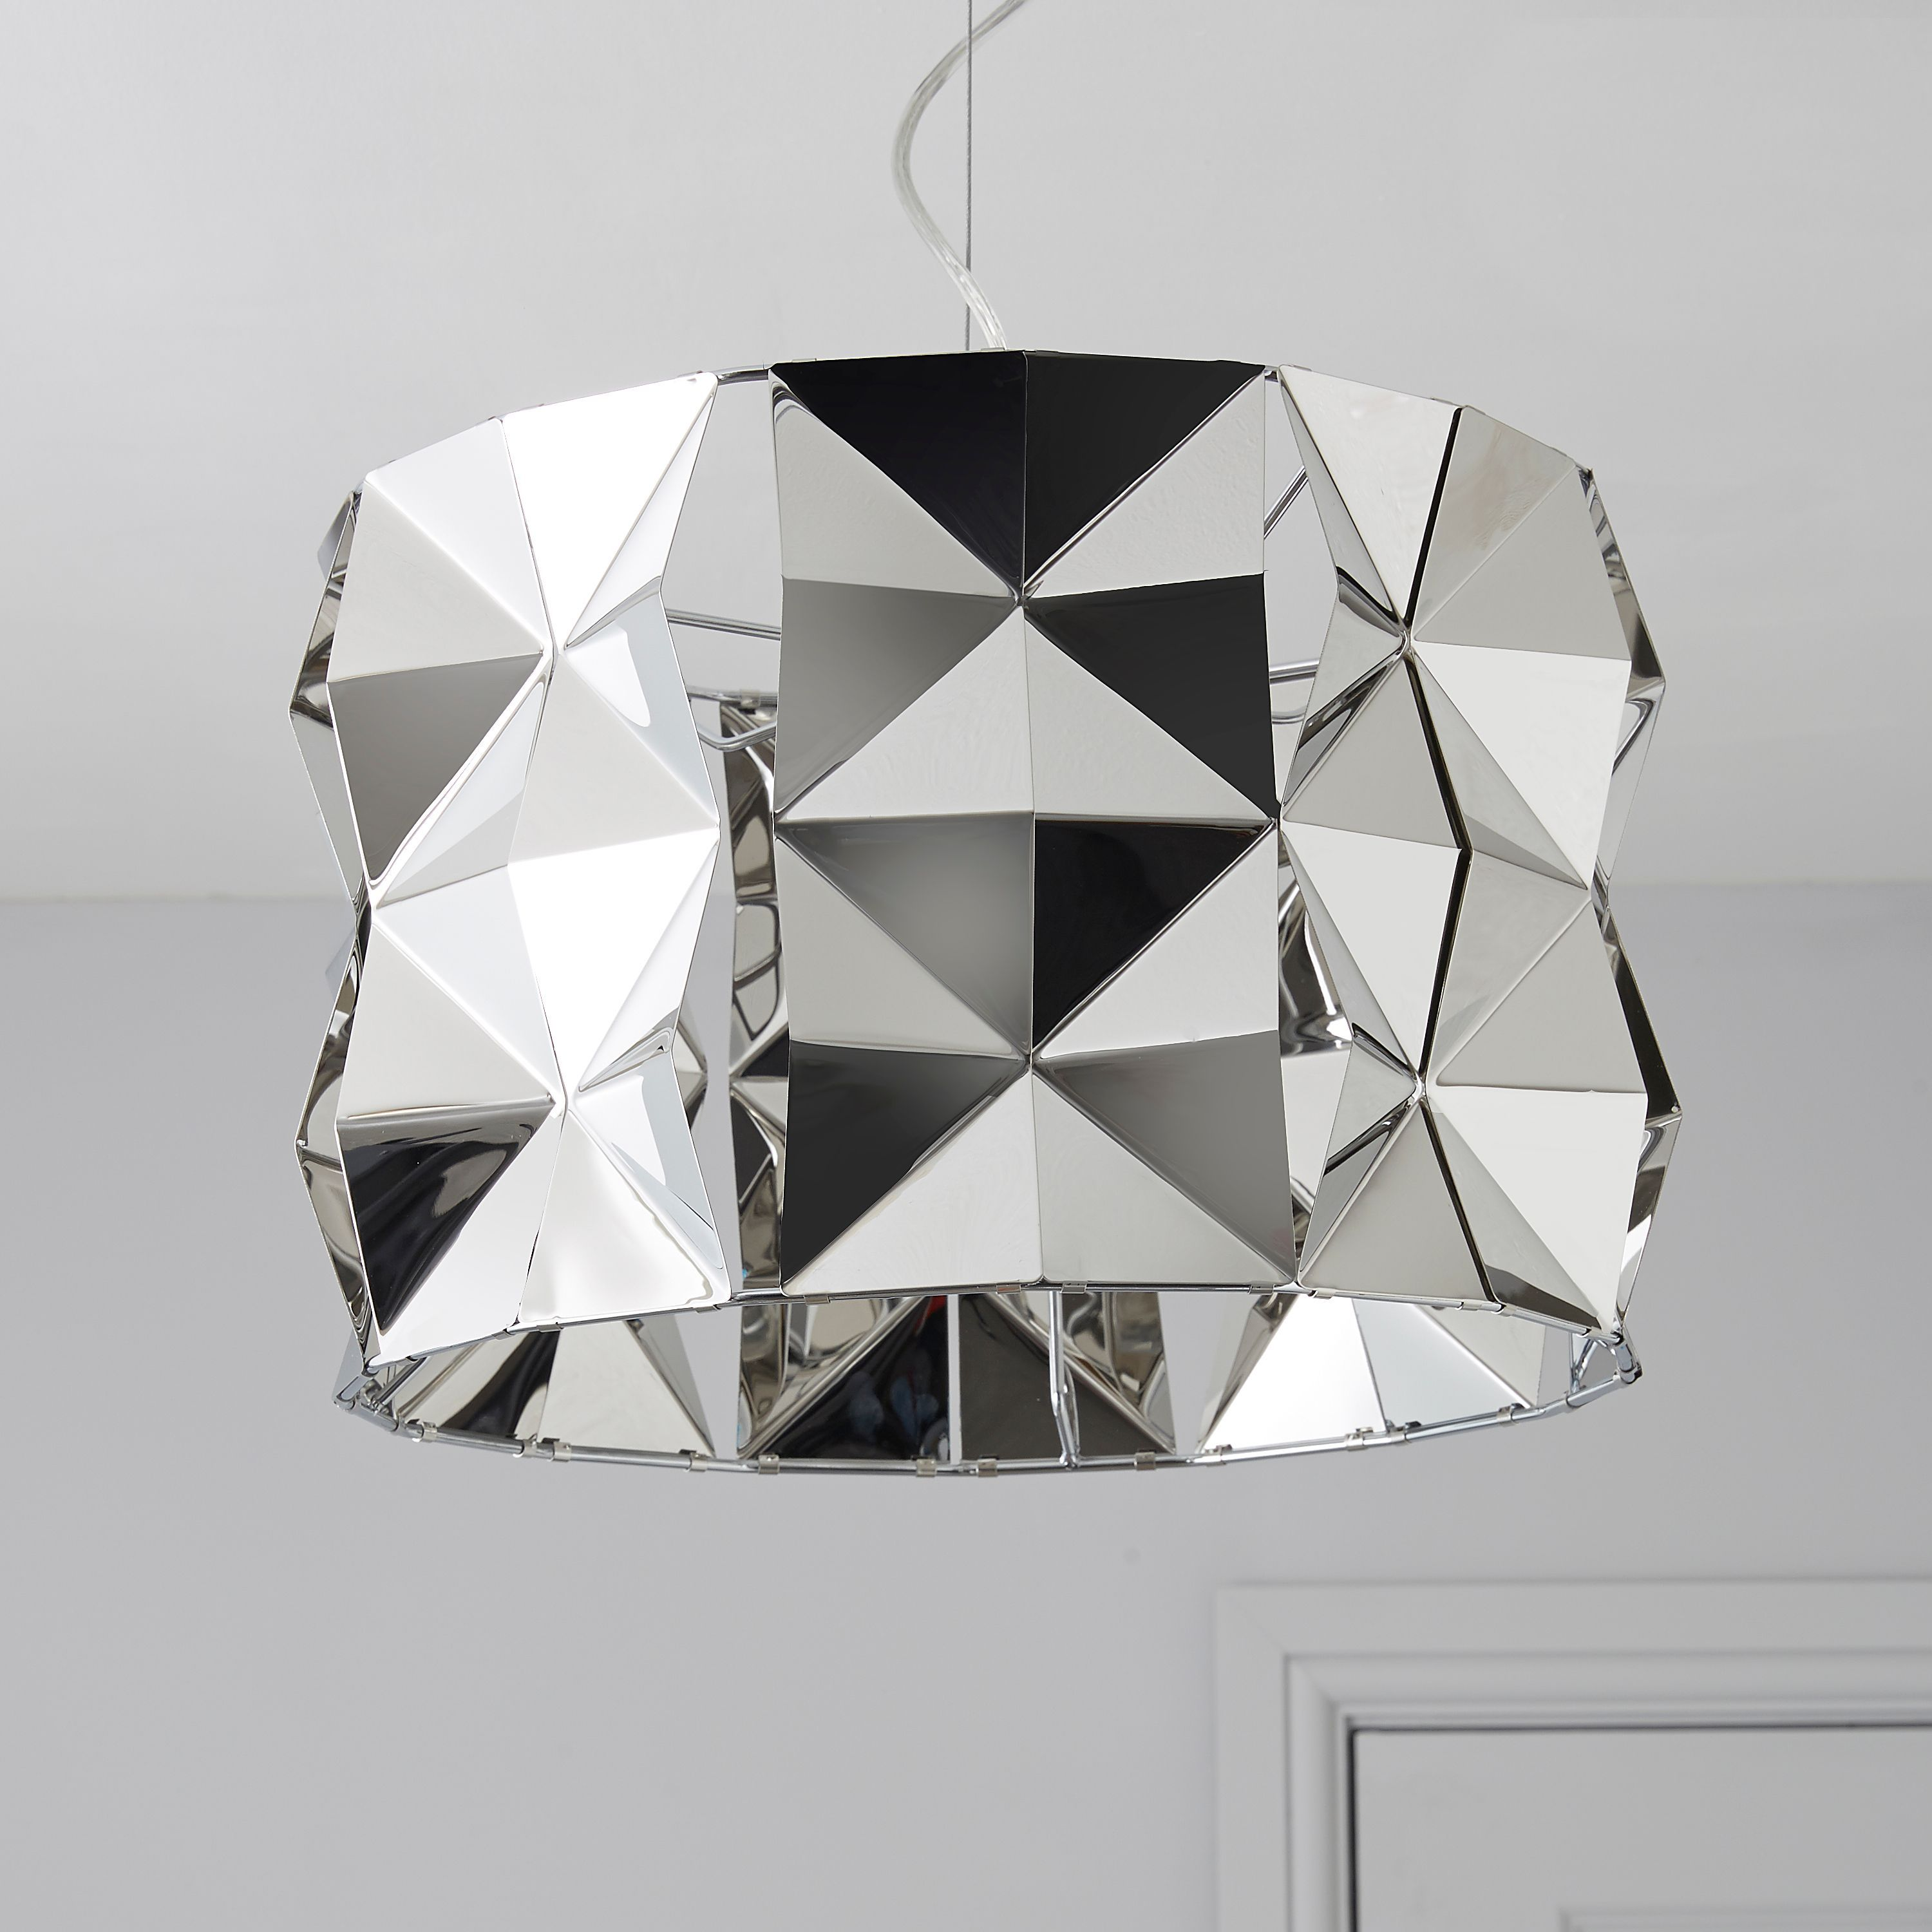 Bathroom Light Fixtures B&Q ciara faceted silver chrome effect pendant ceiling light | ceiling